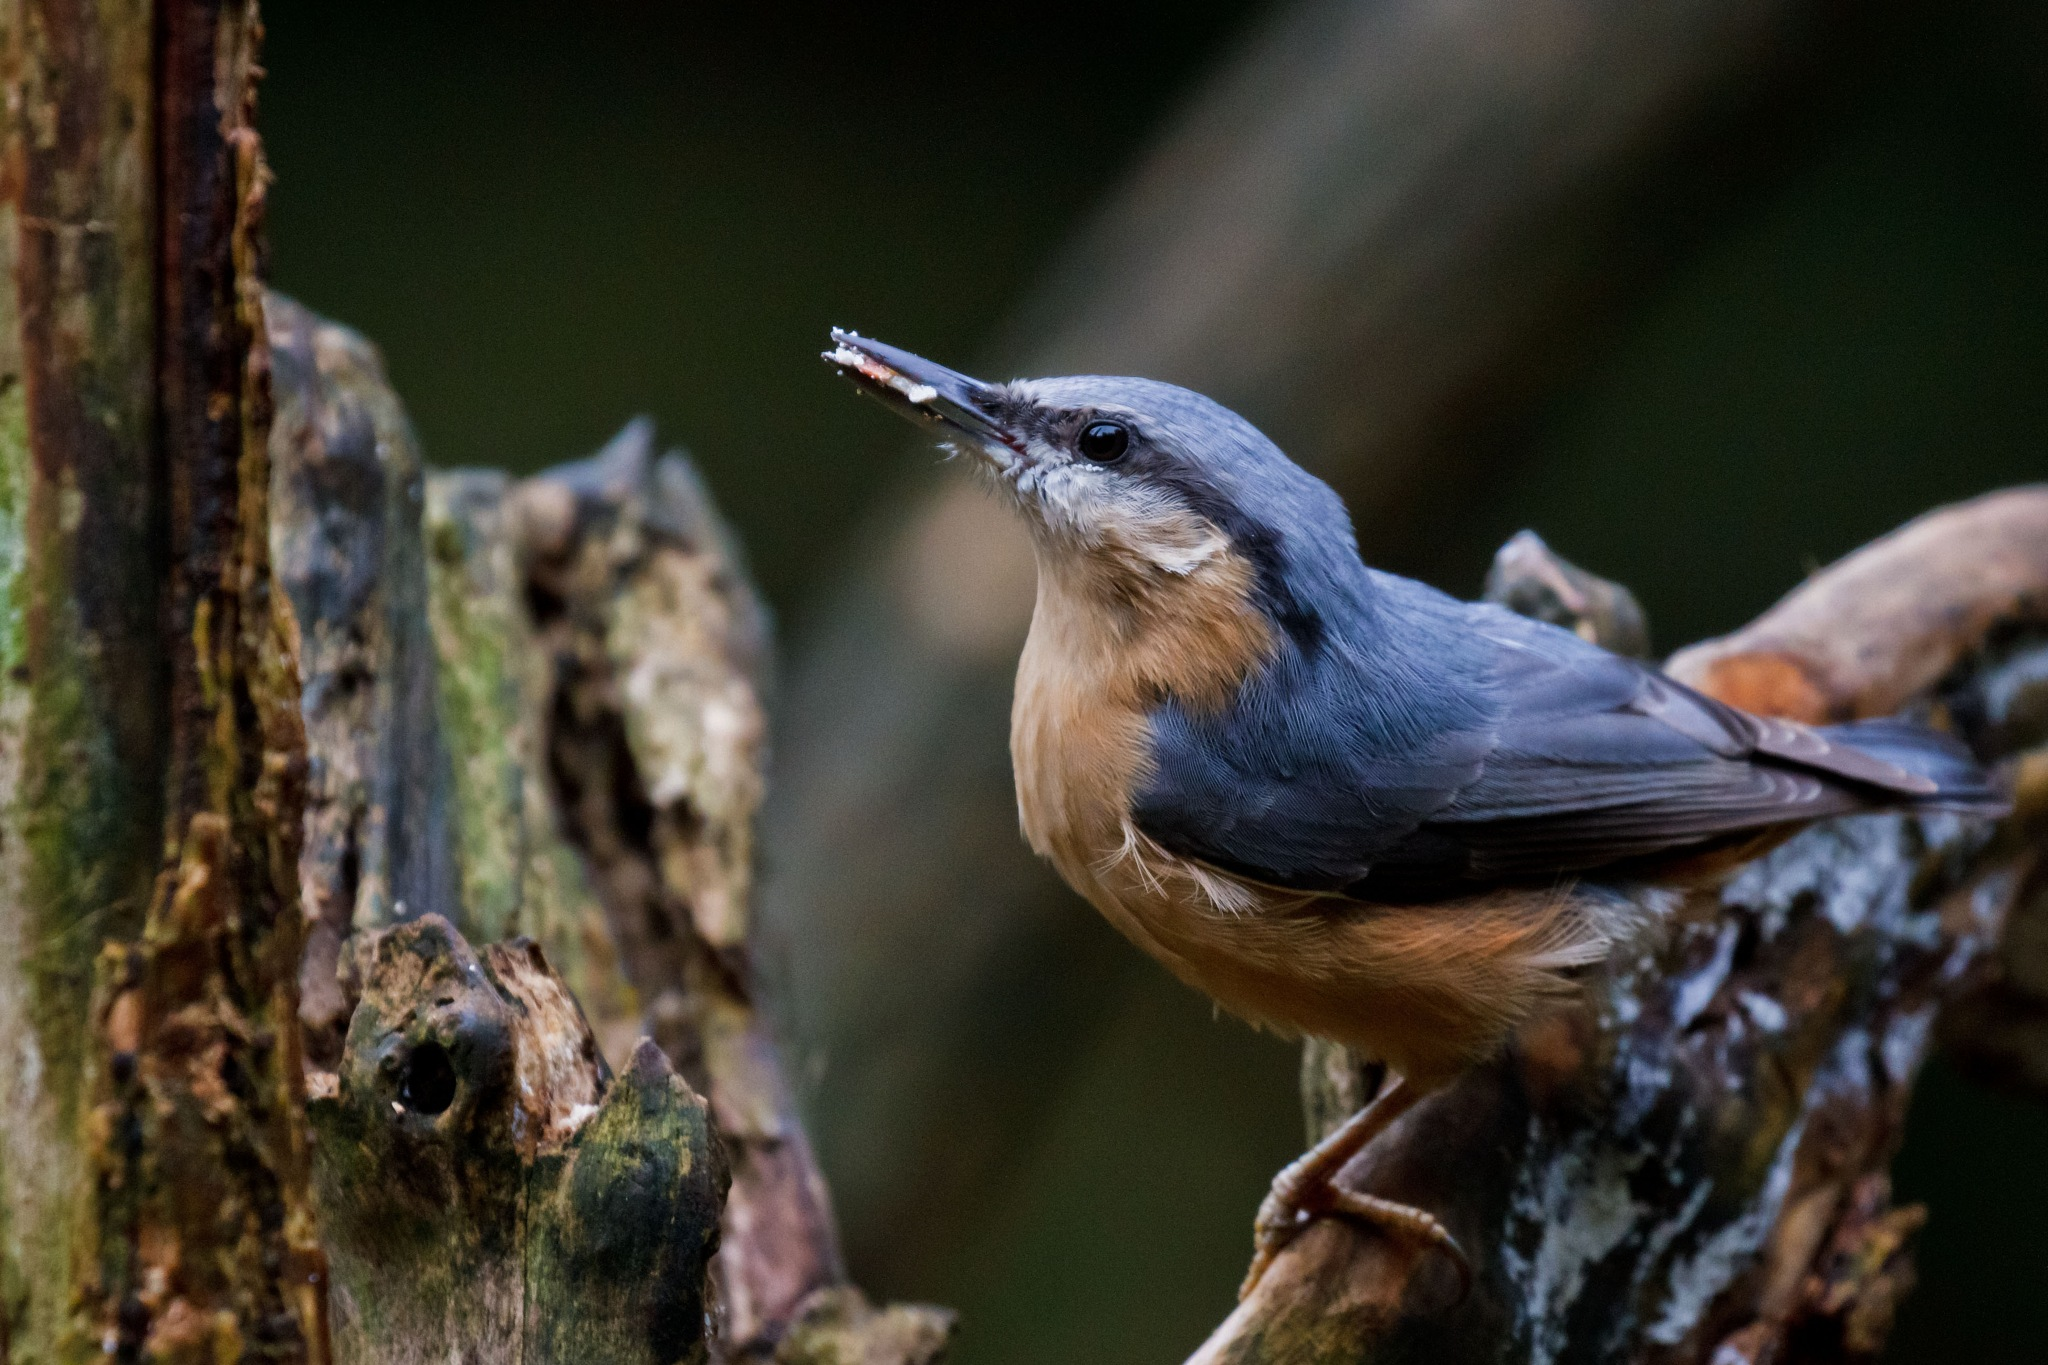 Nuthatch Feeding by Steve Rawlings